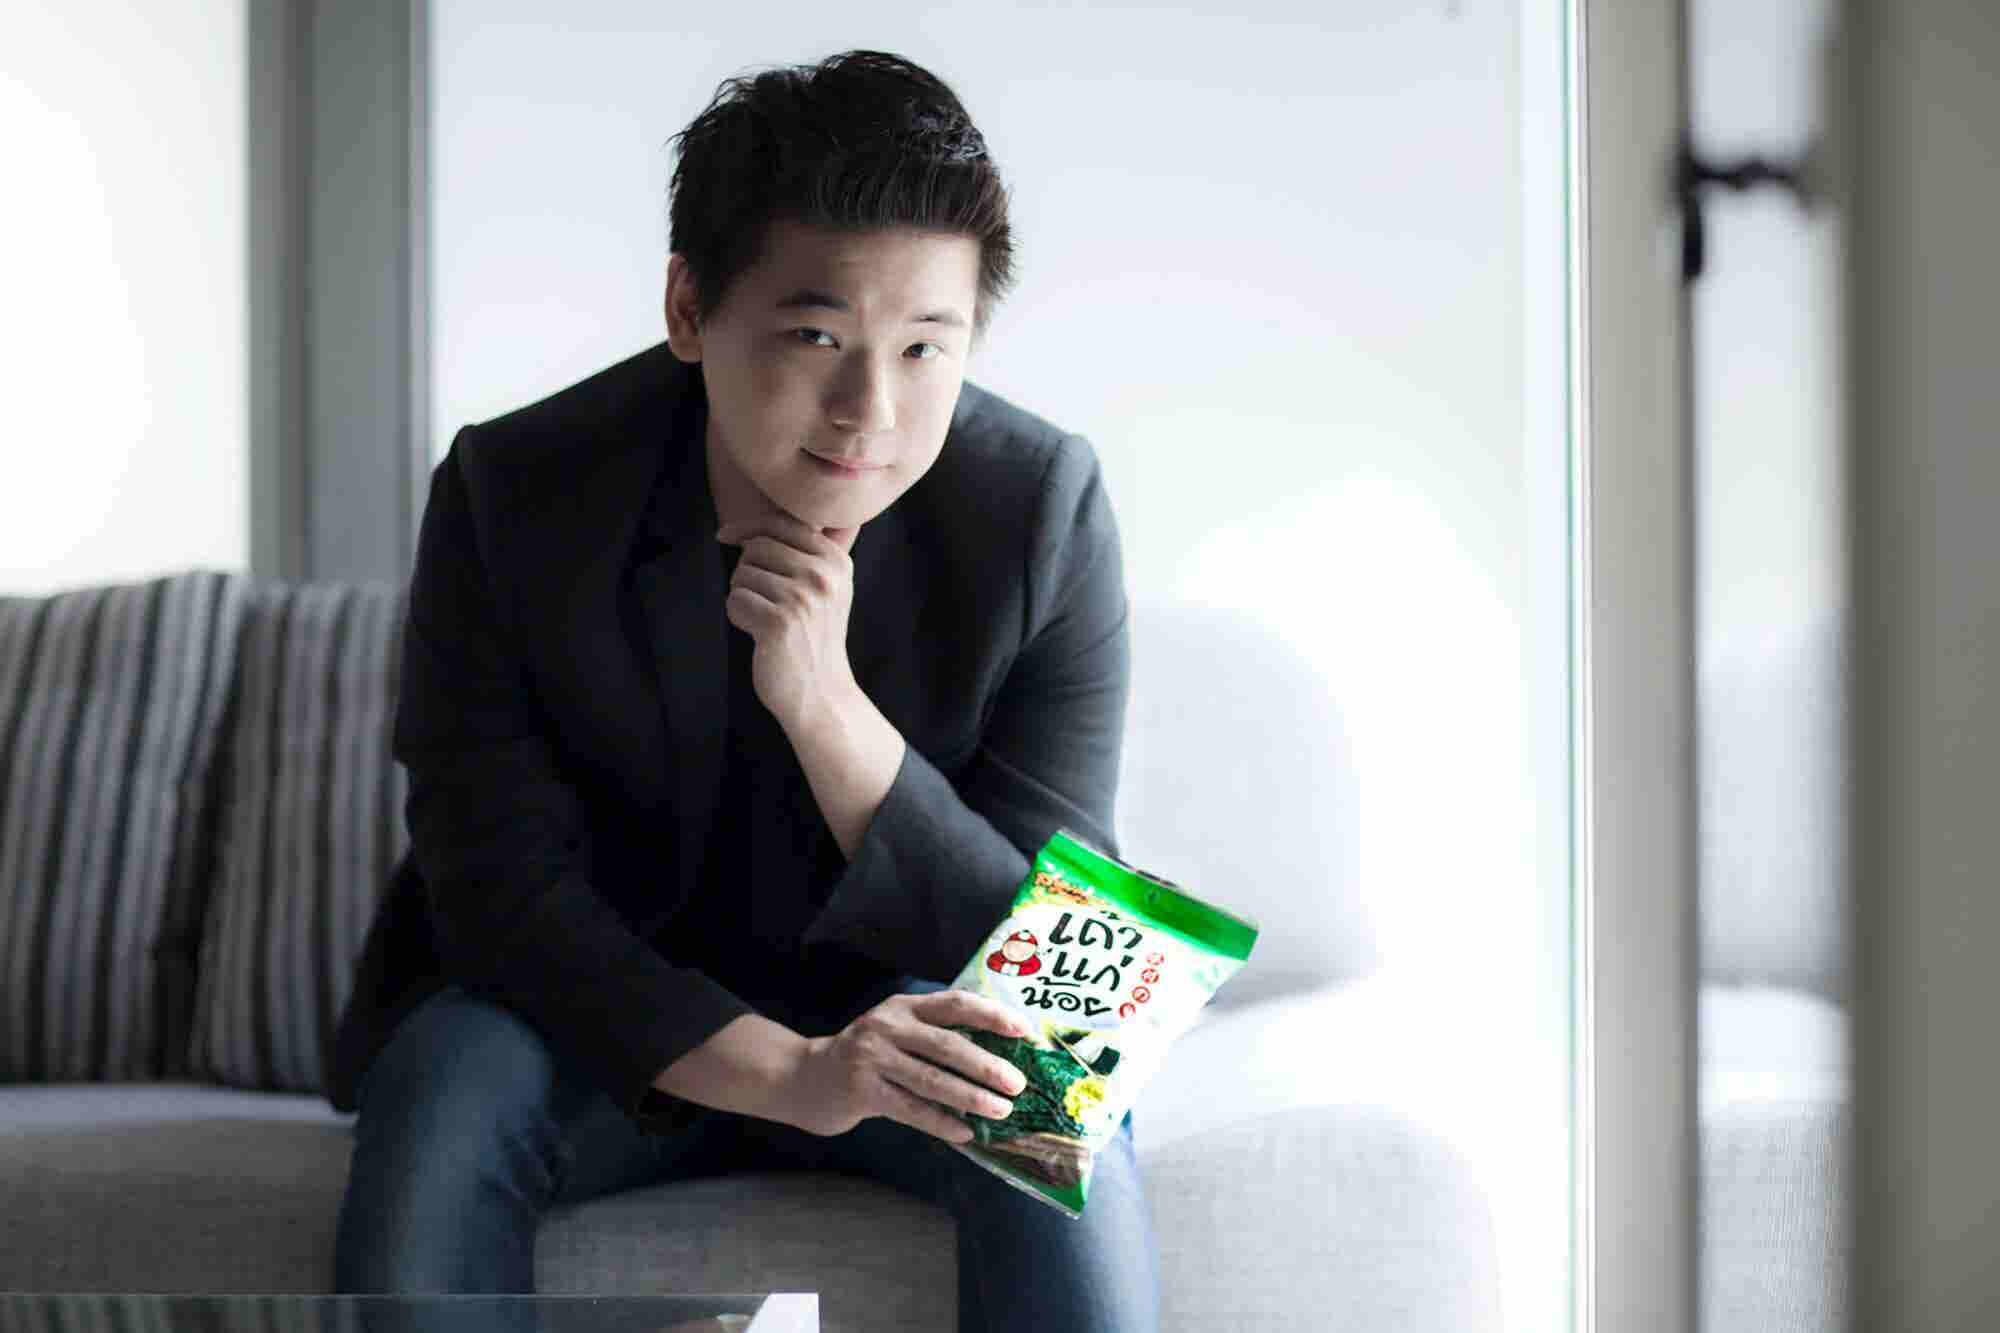 (Podcast) He Started His Business at 19. Now, He's Worth $600 Million With a Global Seaweed Snack Empire.